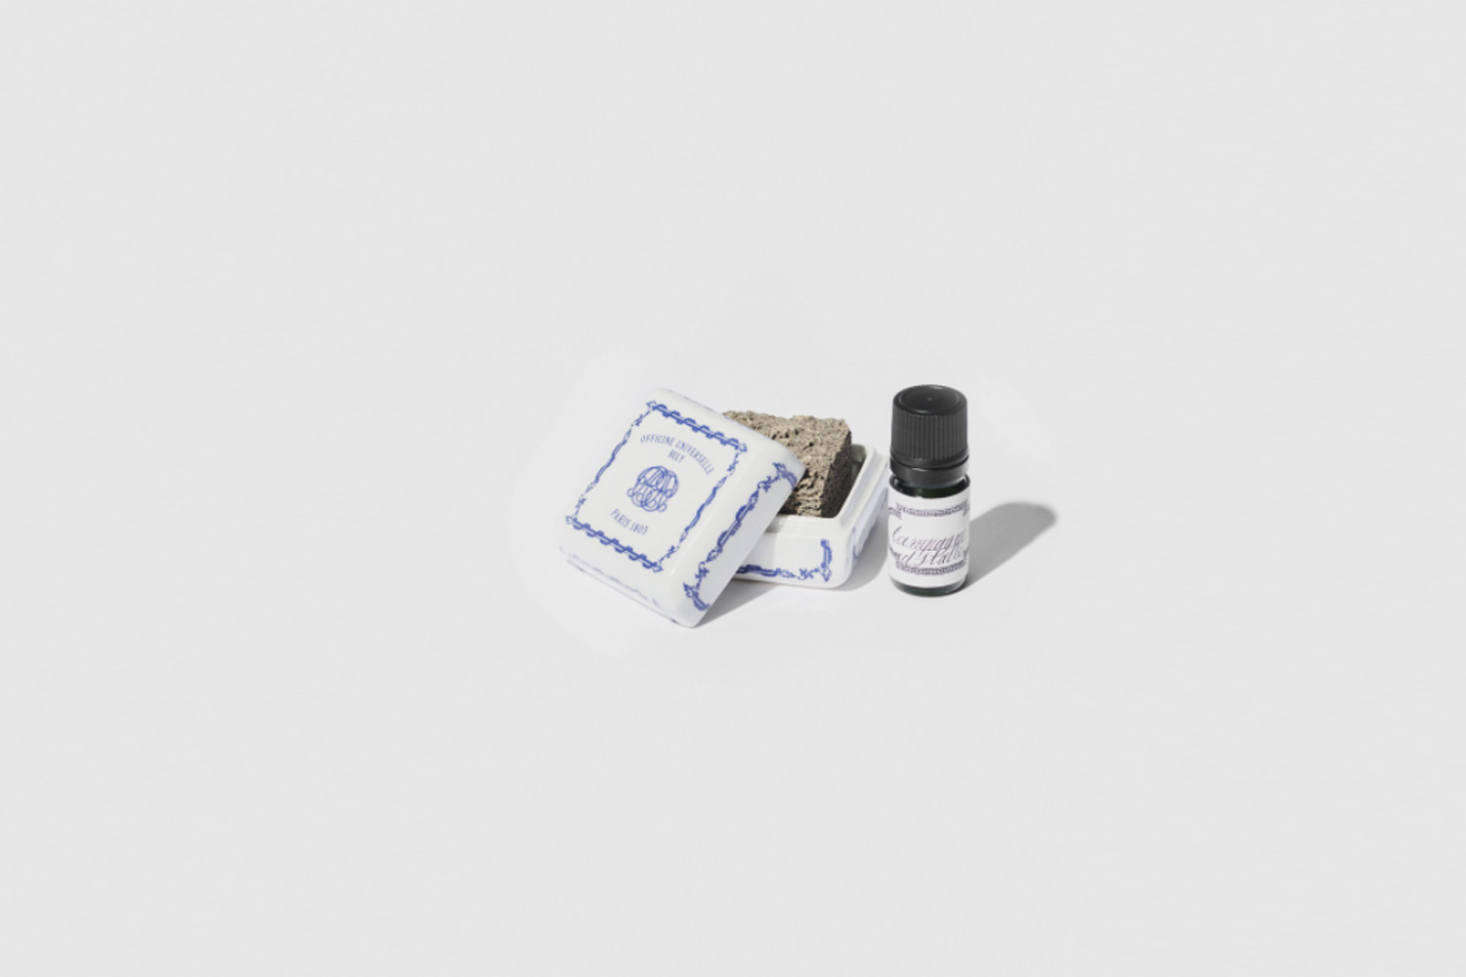 Parisian apothecary Officine Buly makes a line of scented oil designed to drip onto a sedimentary stone housed in a porcelain box. Designed to diffuse fragrance in a heatless and steam-free format, the Alabaster Campagne d&#8